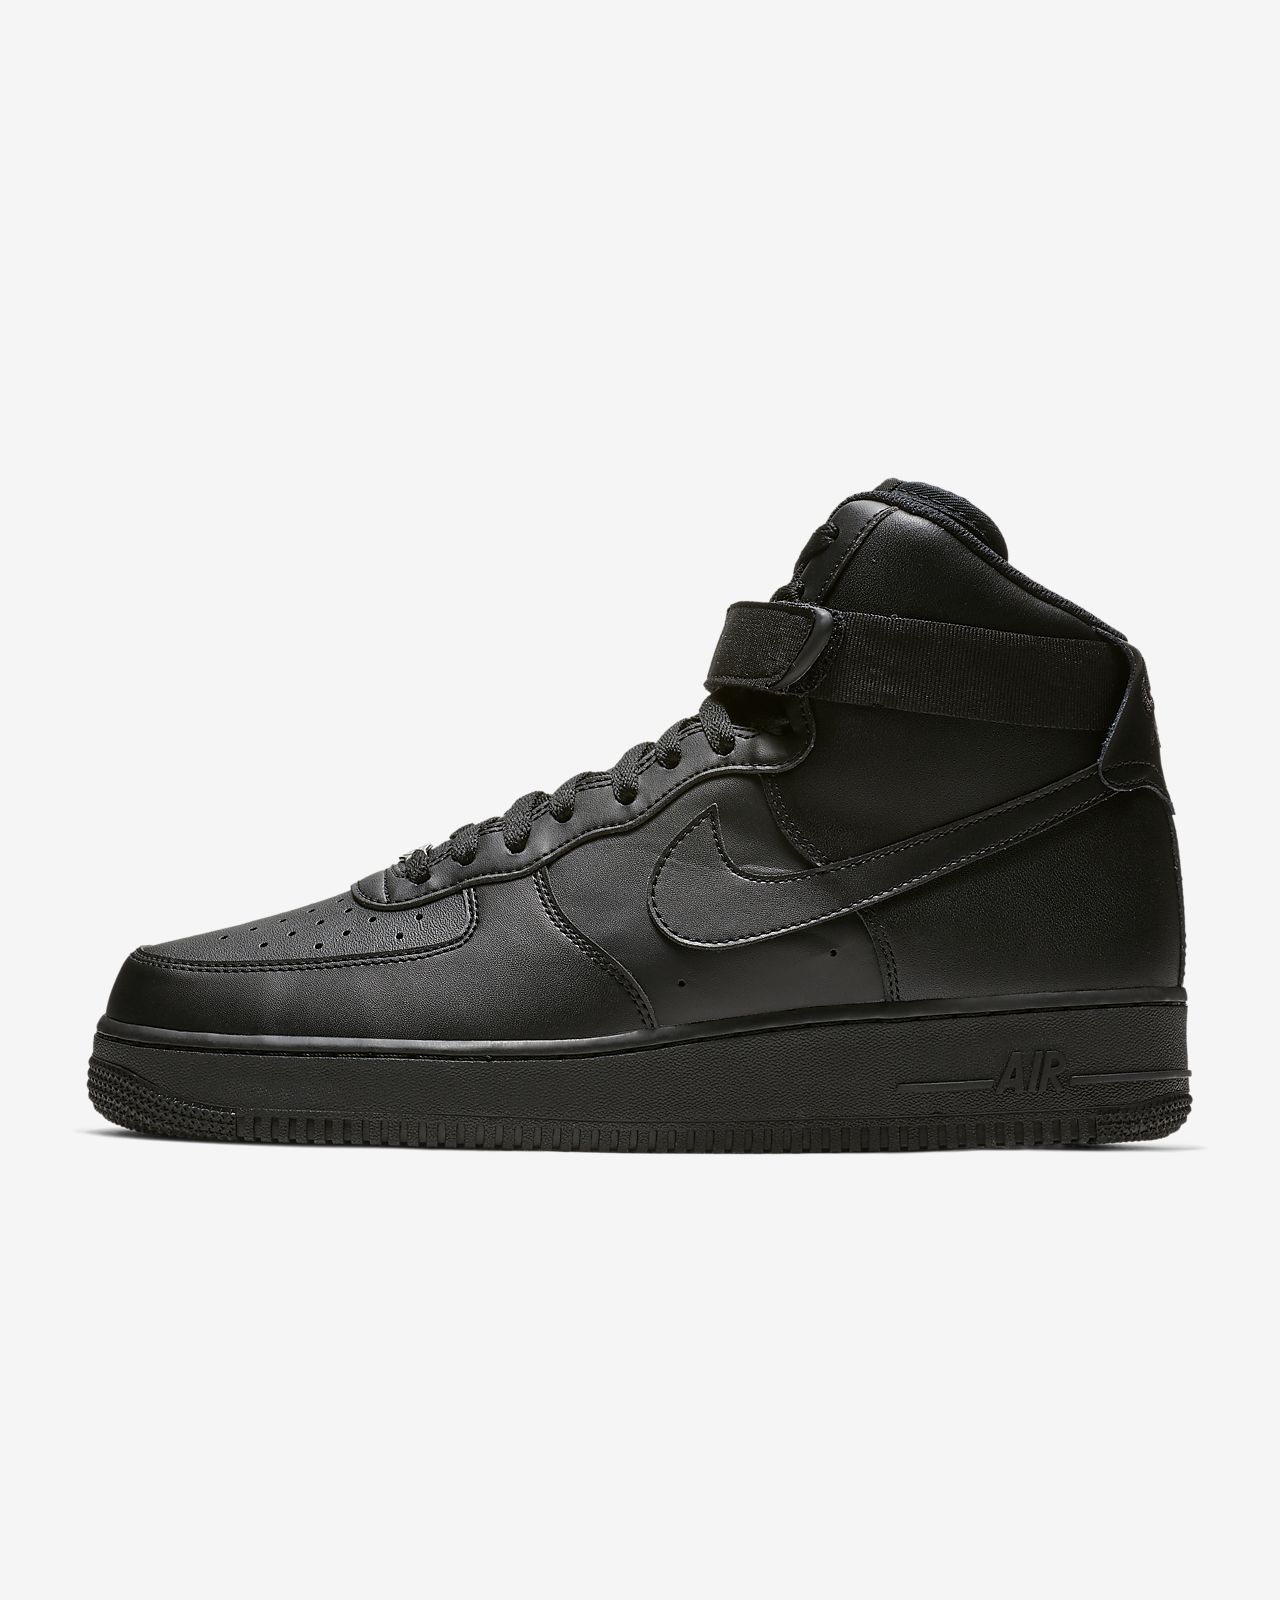 a9eb9d4c3a5e8f Nike Air Force 1 High 07 Men s Shoe. Nike.com